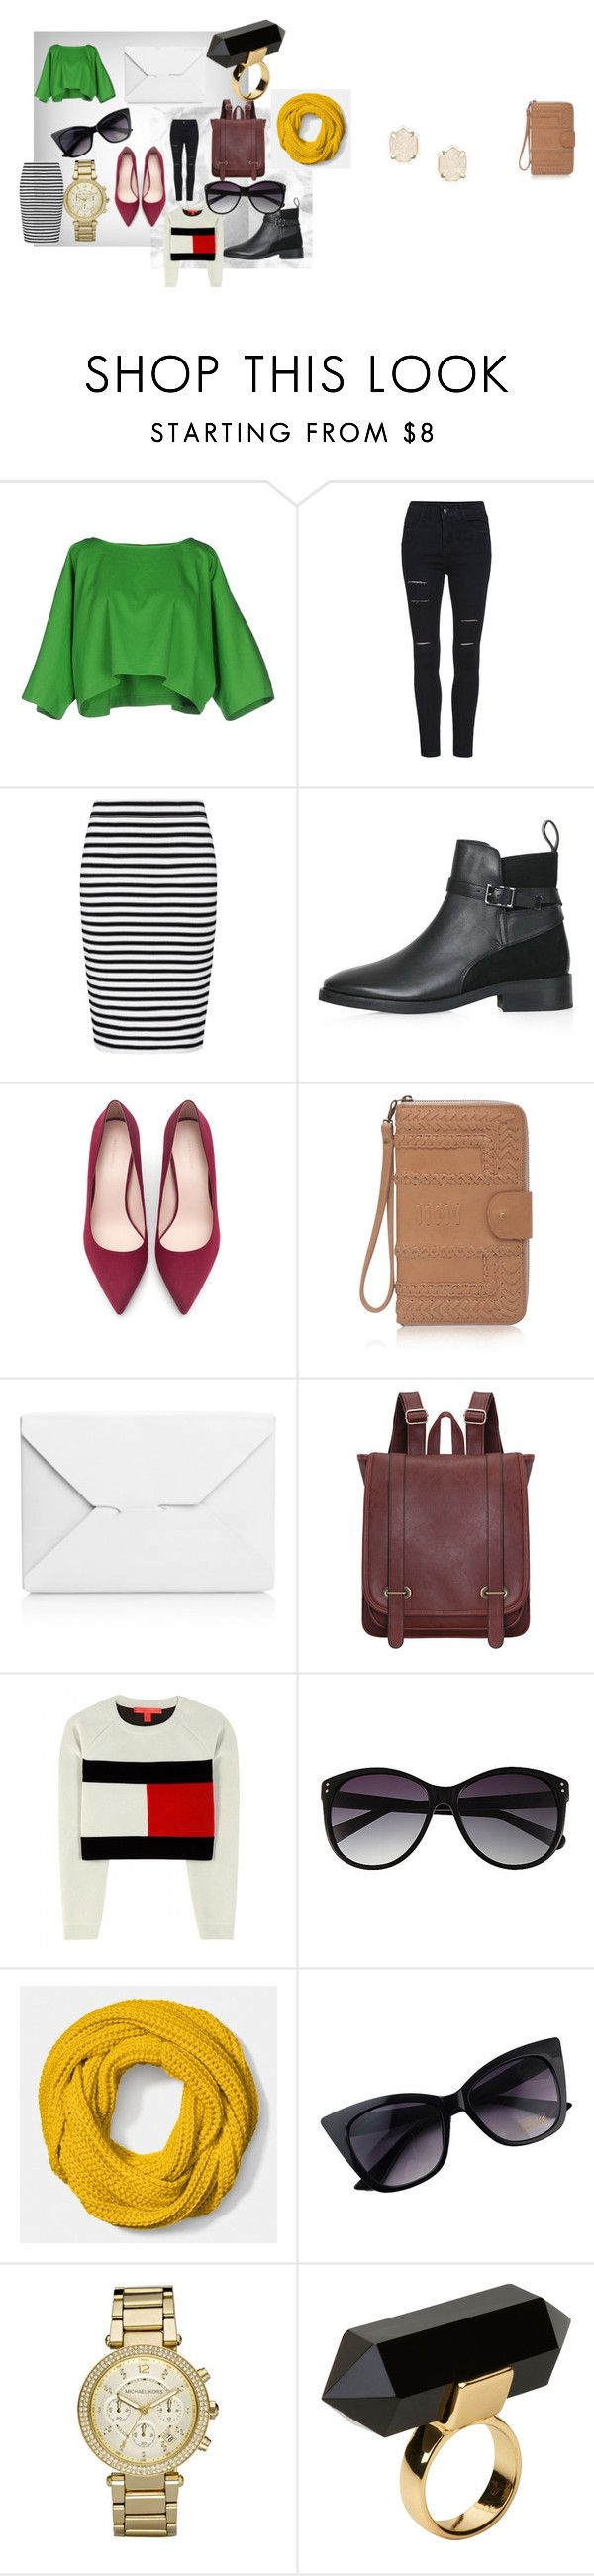 Untitled #4 by maikoyt on Polyvore featuring Tommy Hilfiger, Maison About, French Connection, Topshop, Zara, J.W. Anderson, Michael Kors, Kendra Scott, Monki and Coach